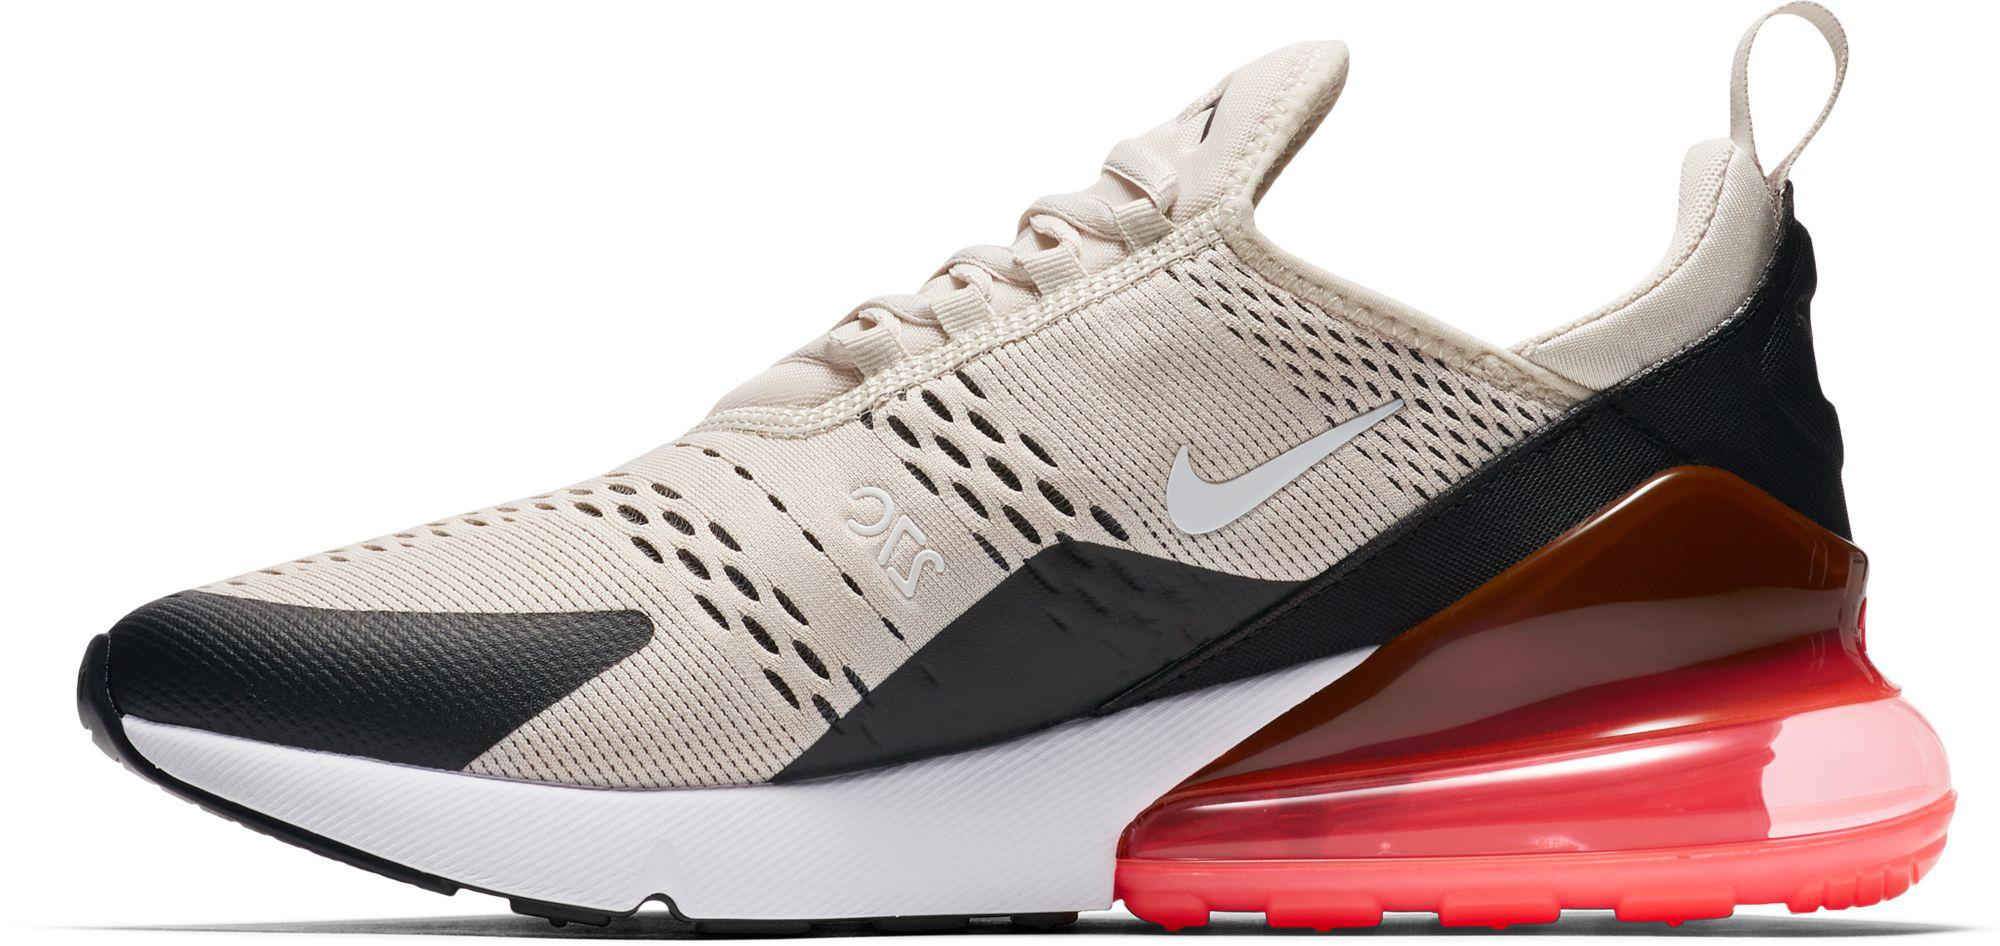 new concept 2ddb6 a9ad6 Nike - Multicolor Air Max 270 Shoes for Men - Lyst